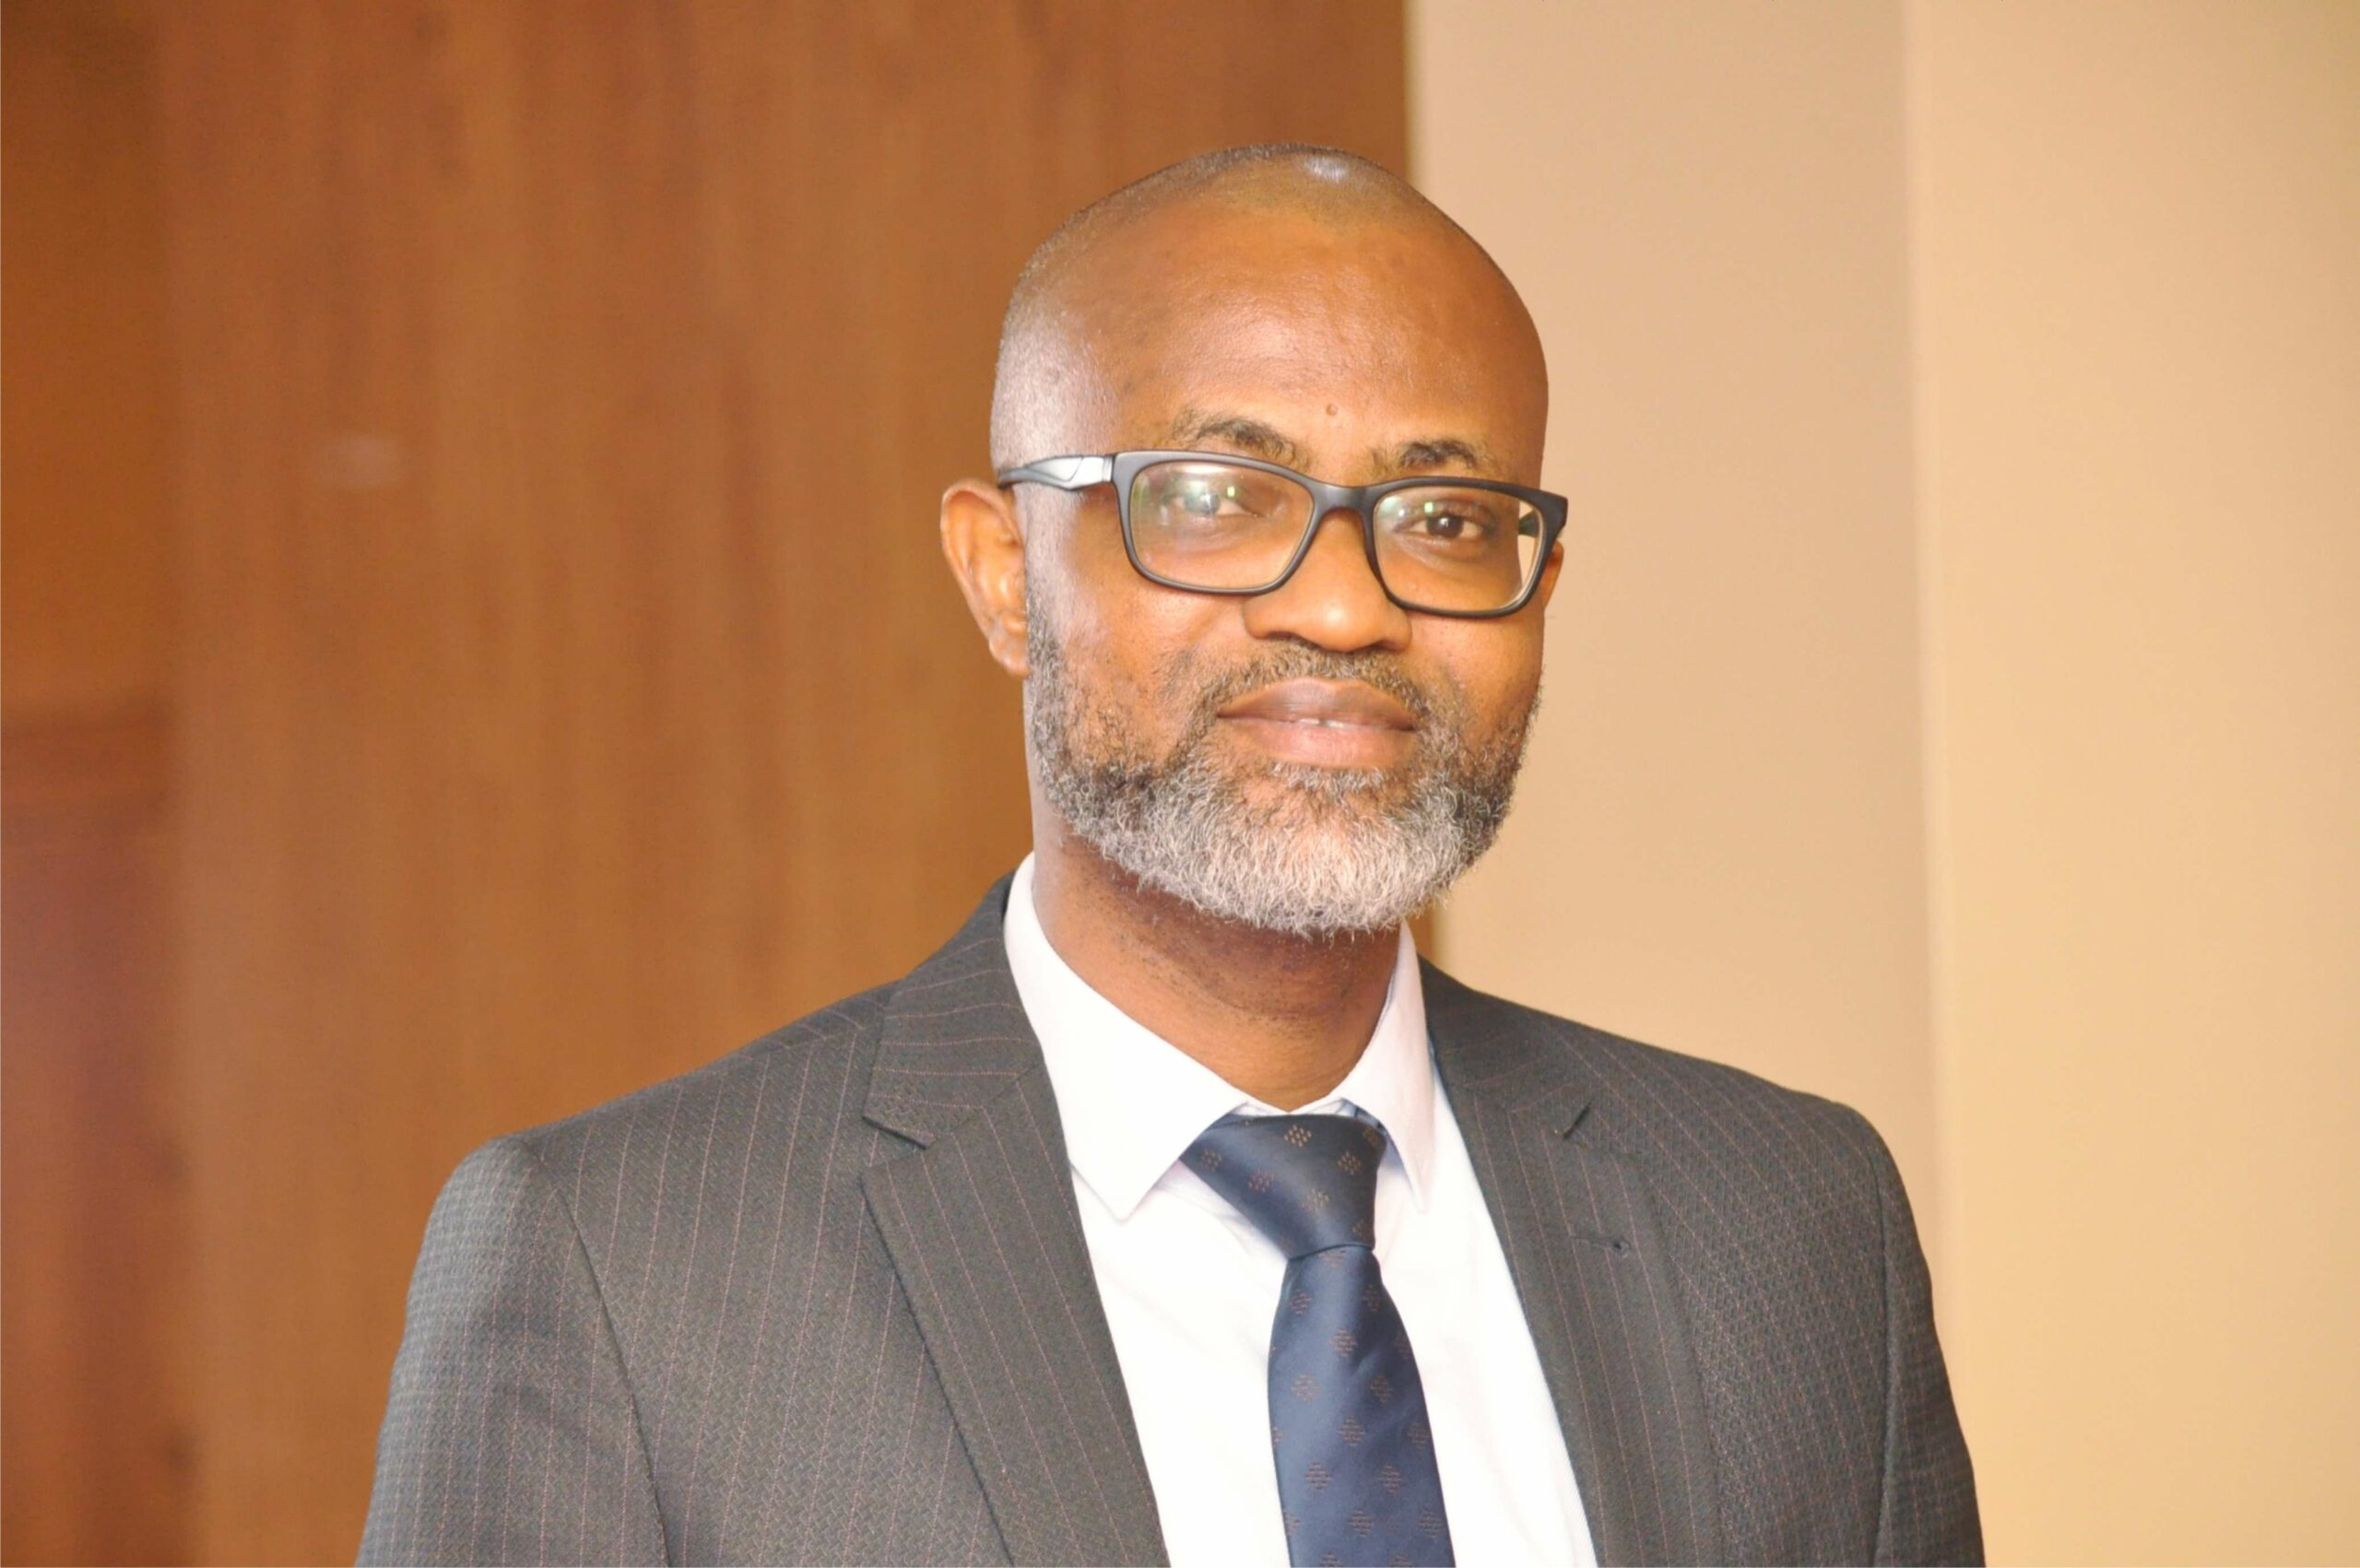 Anthony Atata's Eid al Fitr message to NBA Lagos members, urges lawyers to find guidance in lessons of Ramadan.